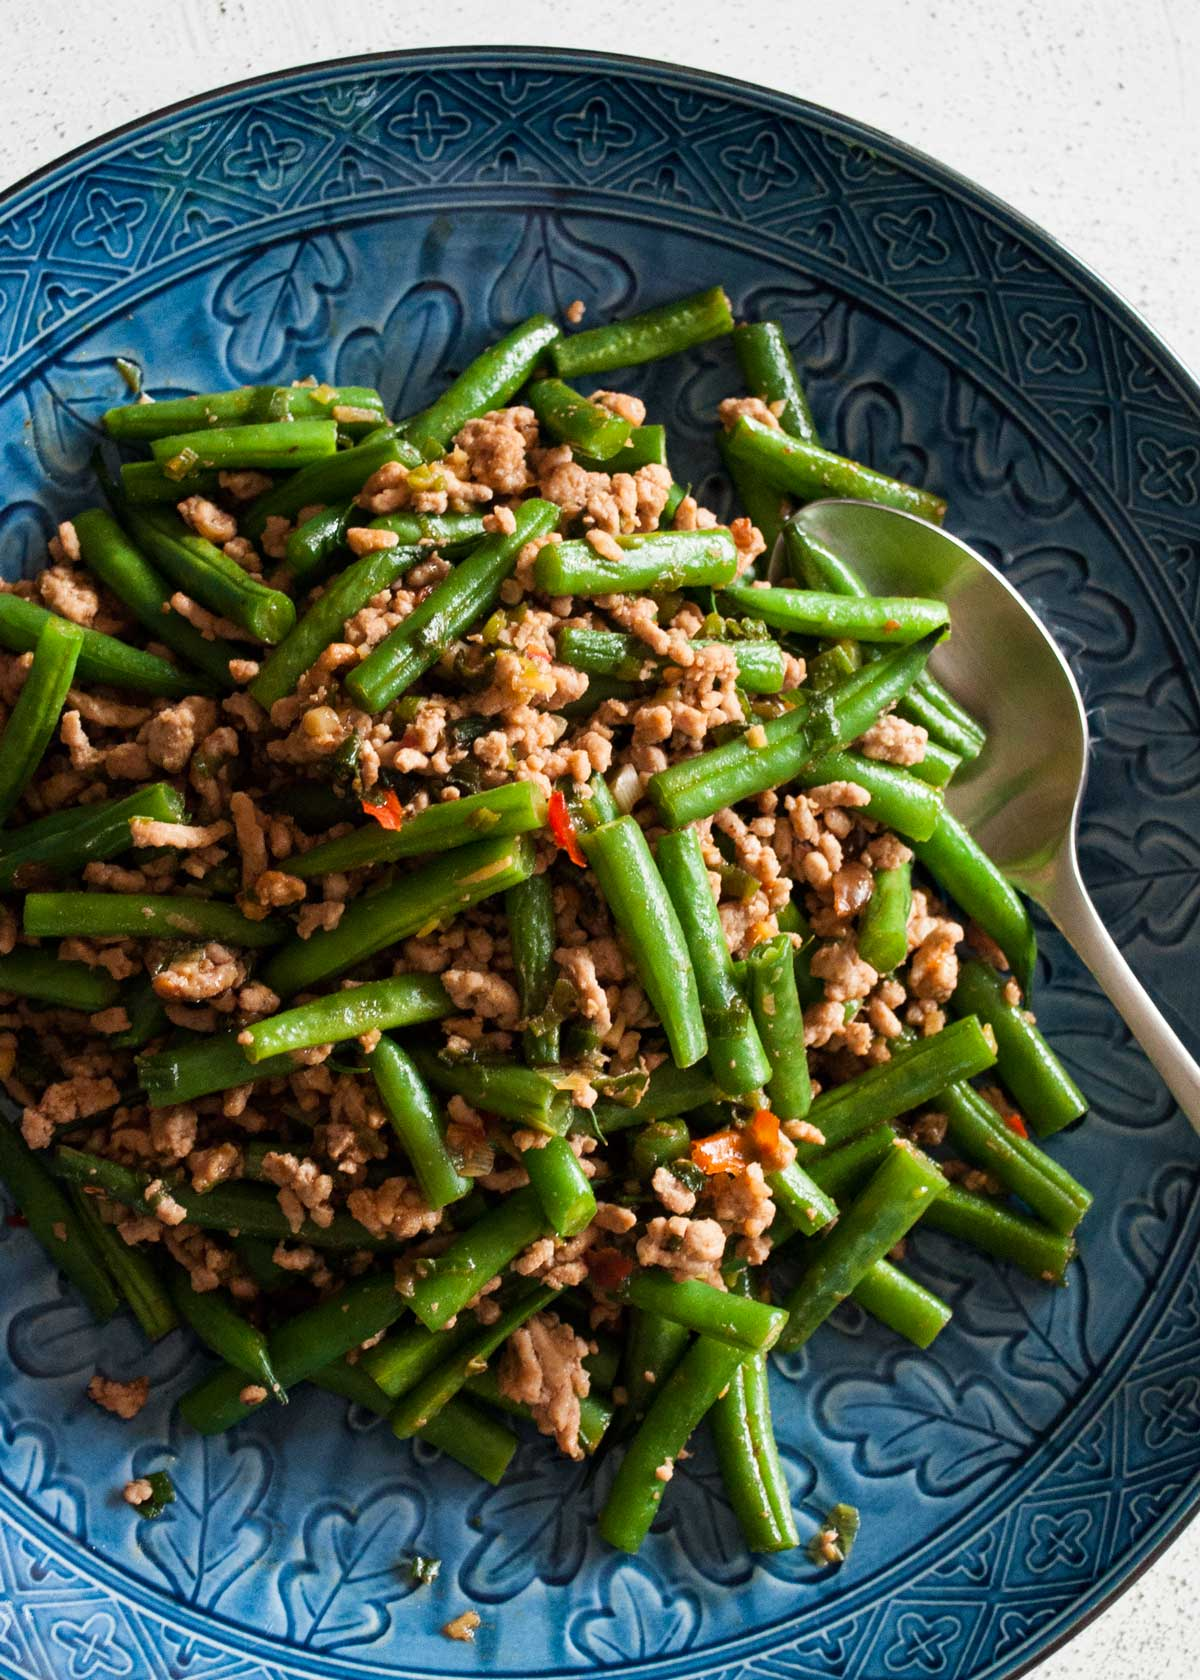 Beans and pork mince stir fry is the Japanese version of Chinese style dish which goes so well with rice. It's not as oily as Chinese style with milder spices.